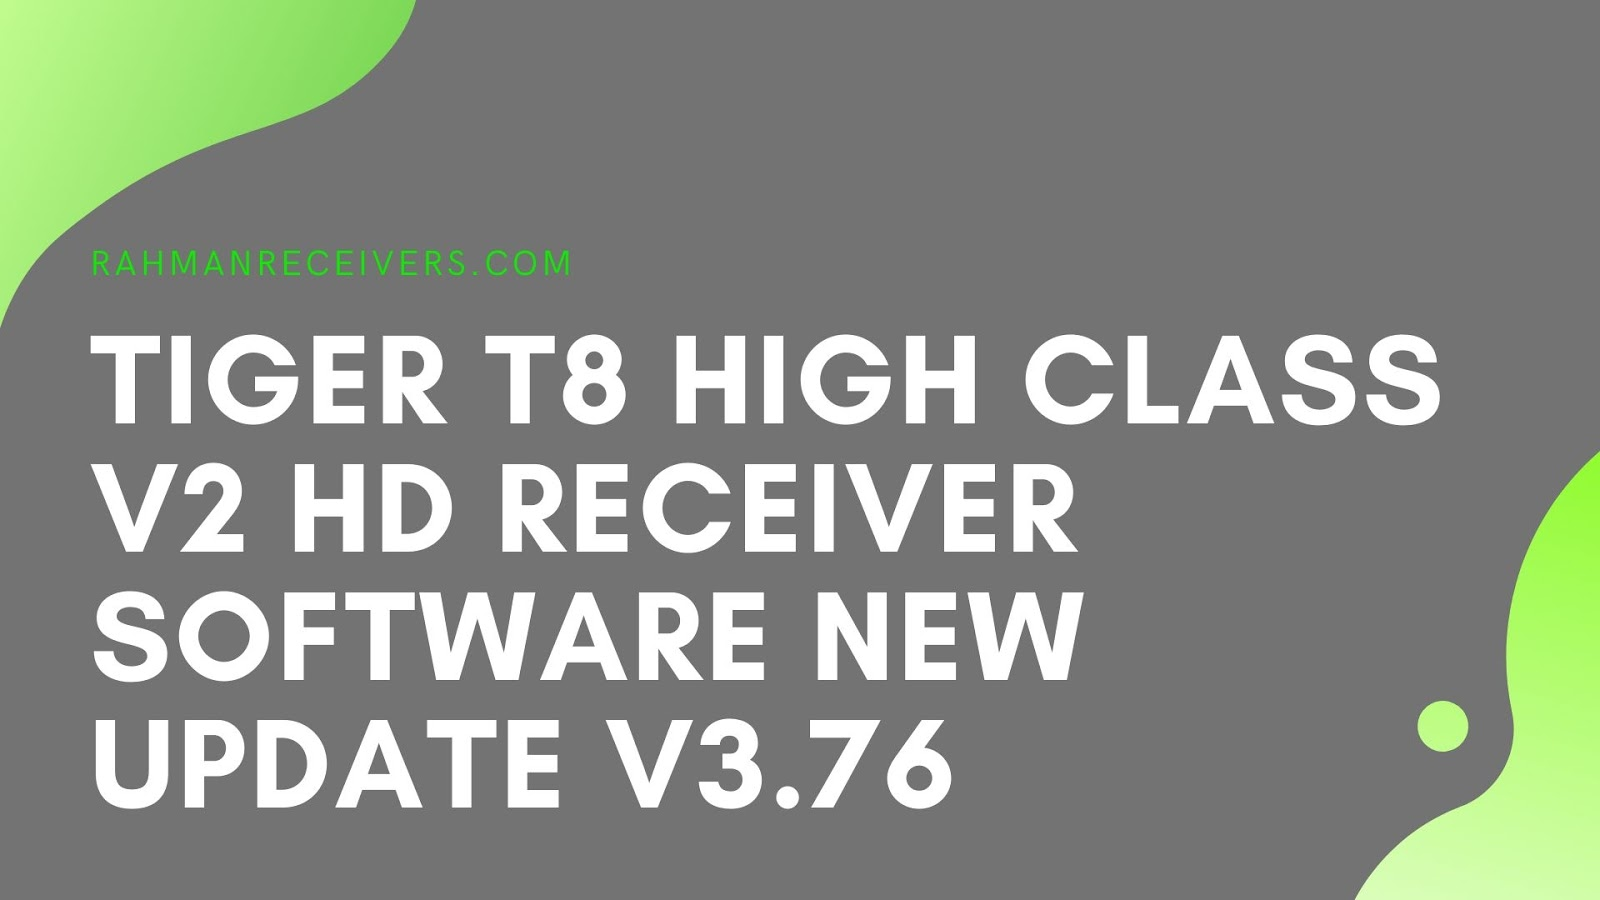 TIGER T8 HIGH CLASS V2 HD RECEIVER SOFTWARE NEW UPDATE V3.76